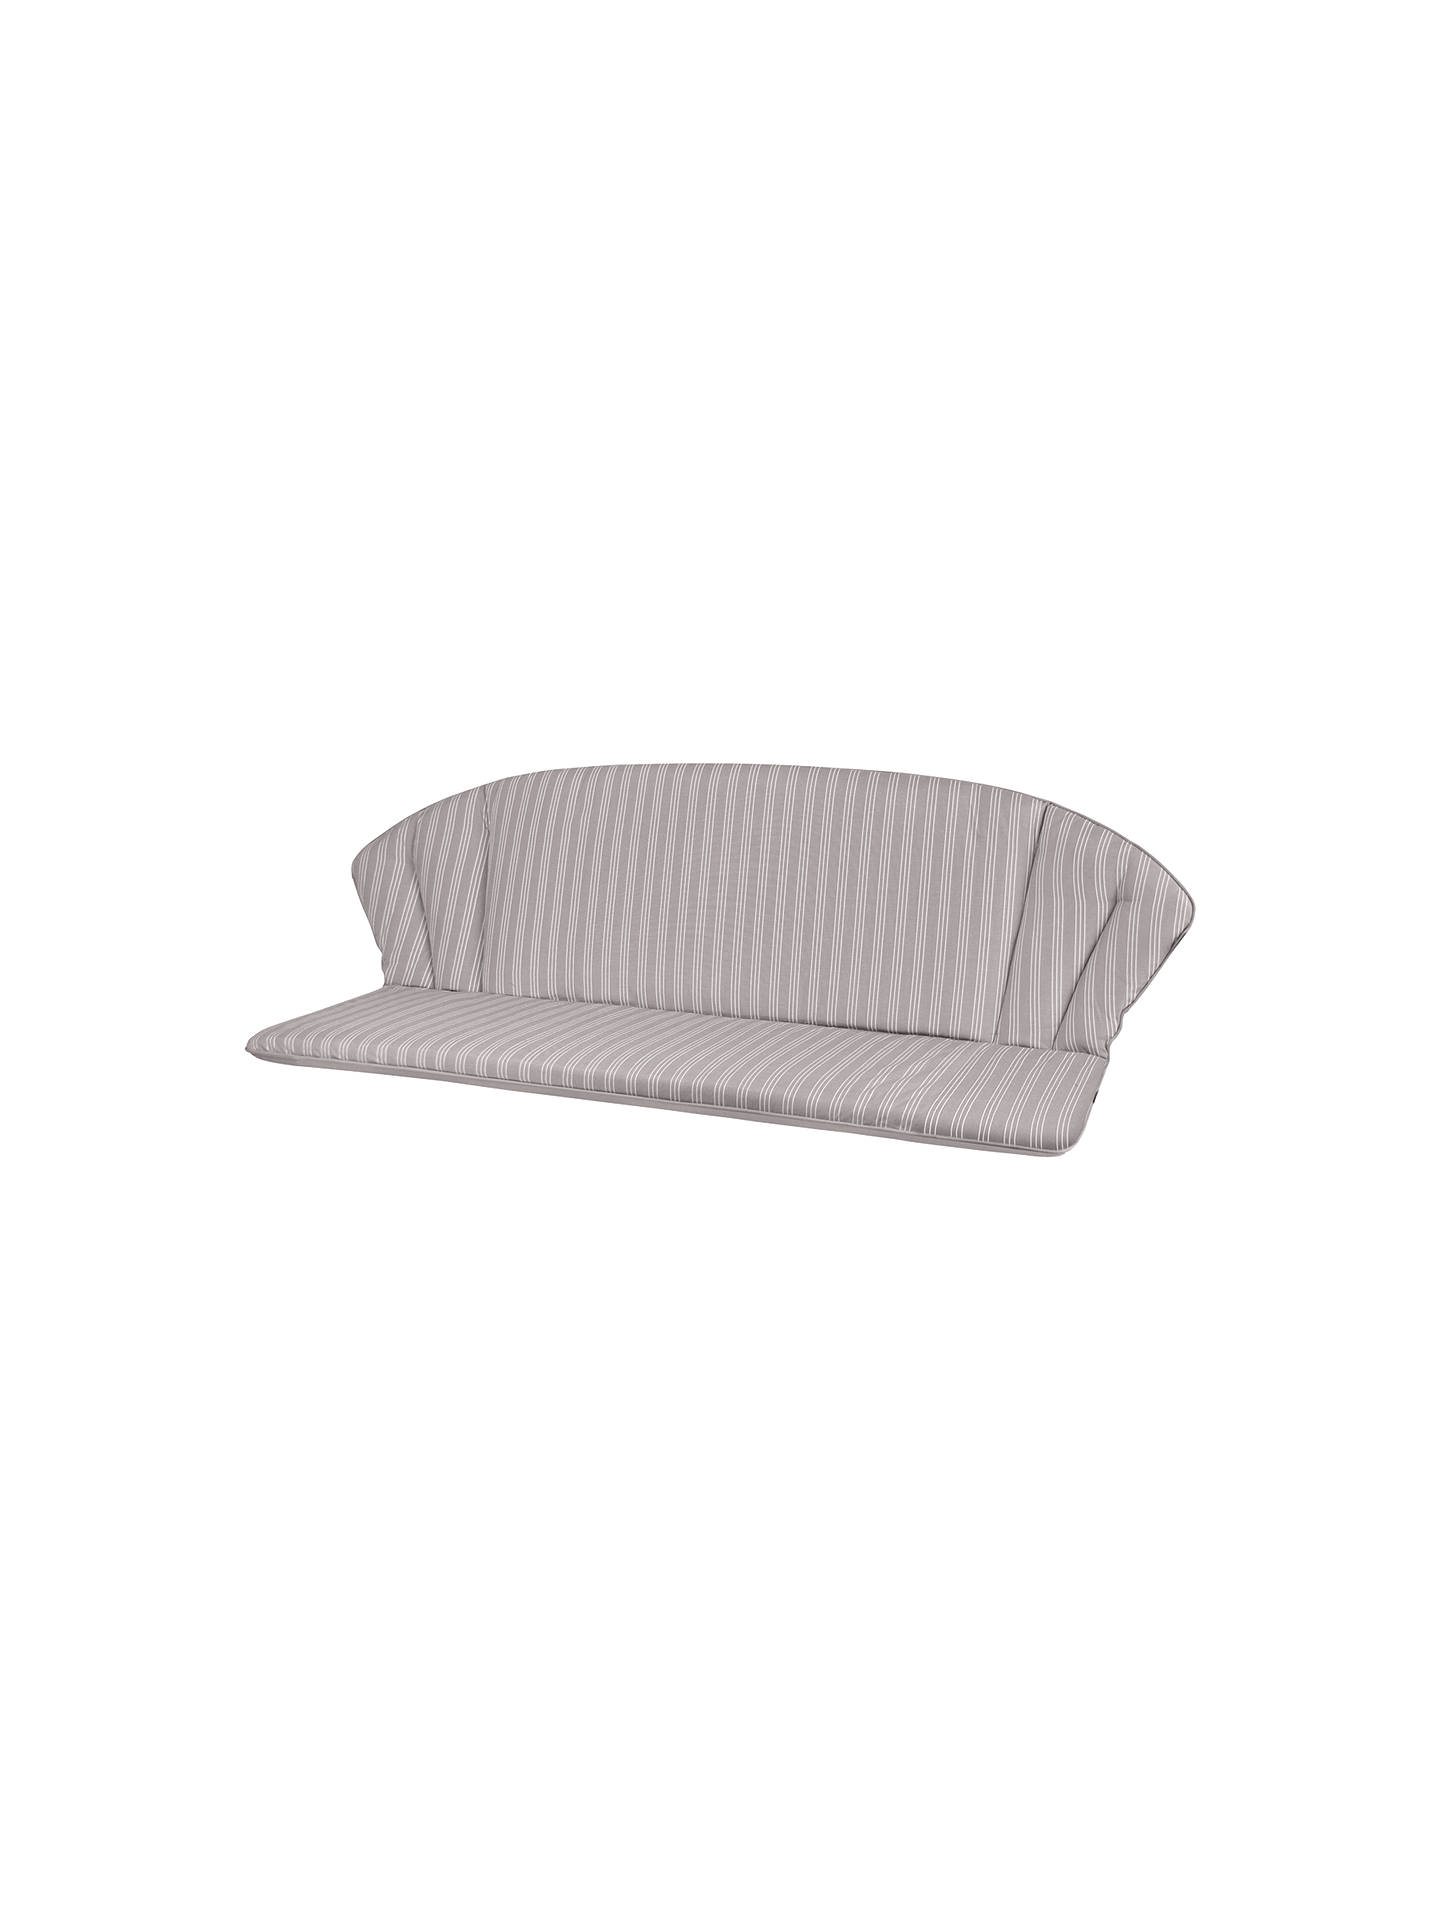 Buy John Lewis & Partners Henley by KETTLER 3-Seater Garden Bench Cushion, Grey Online at johnlewis.com